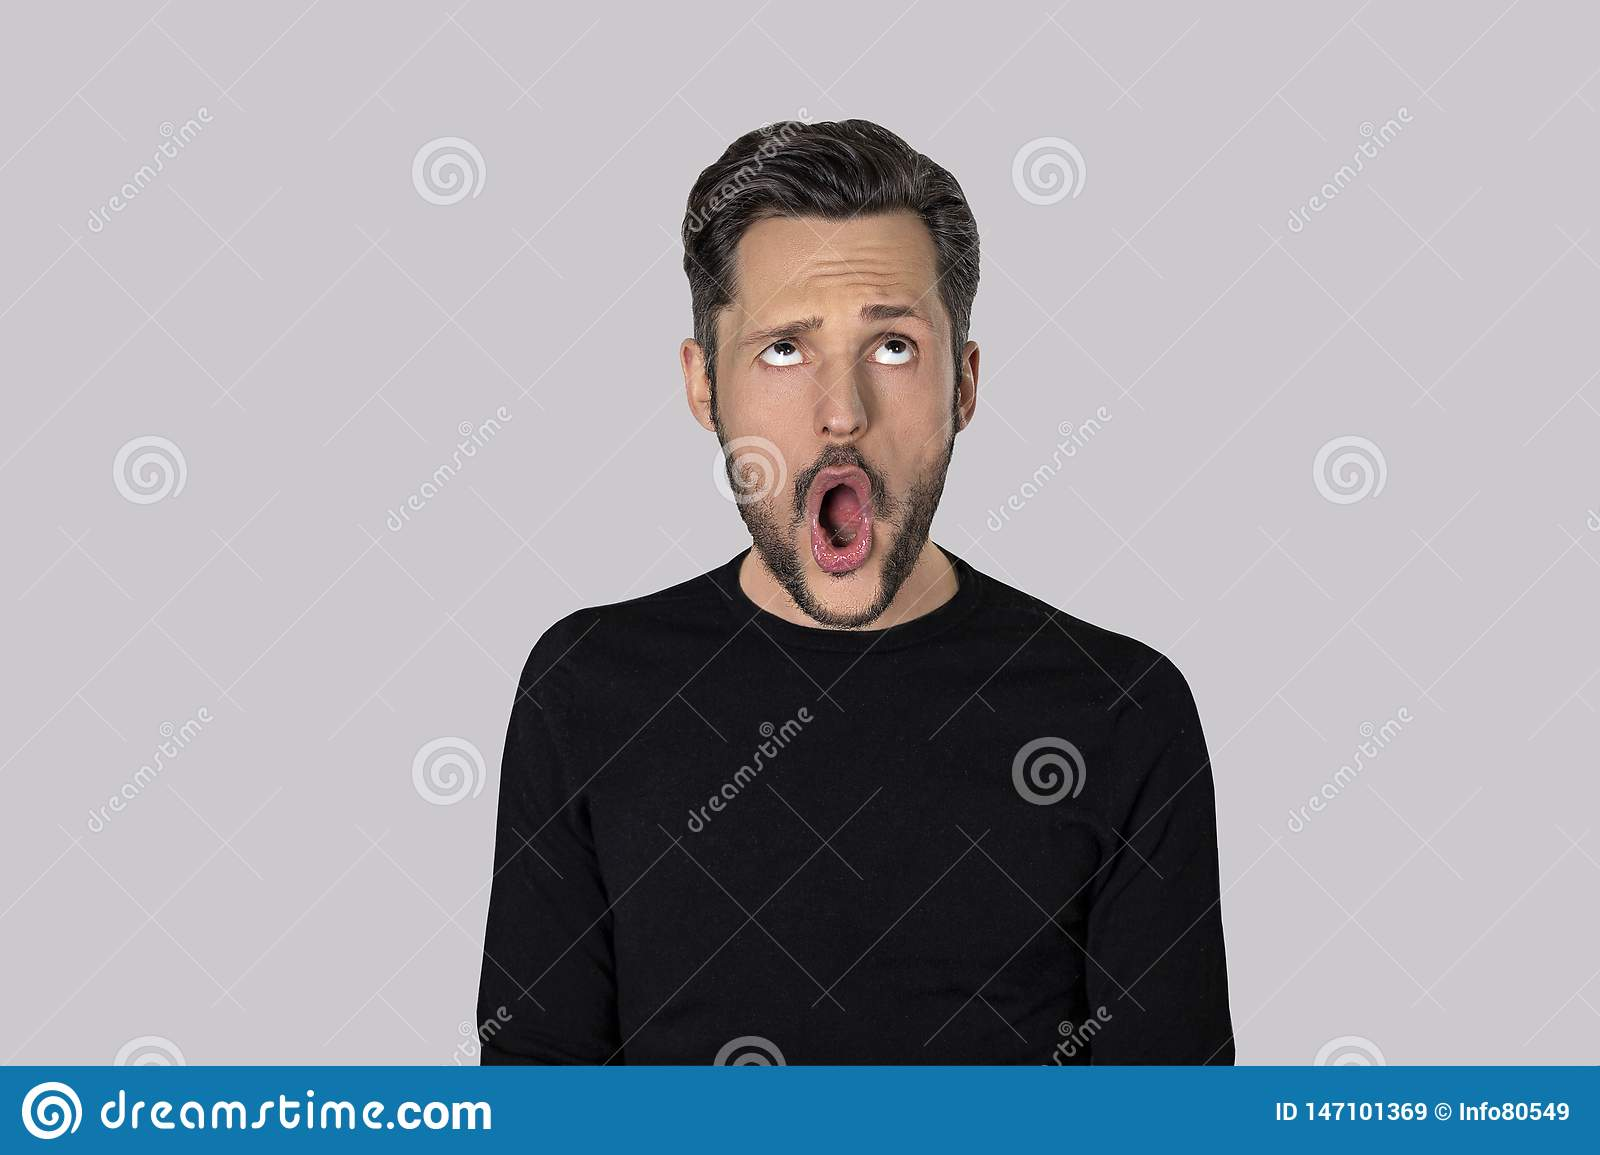 Portrait of young man with a funny expression isolated on grey background